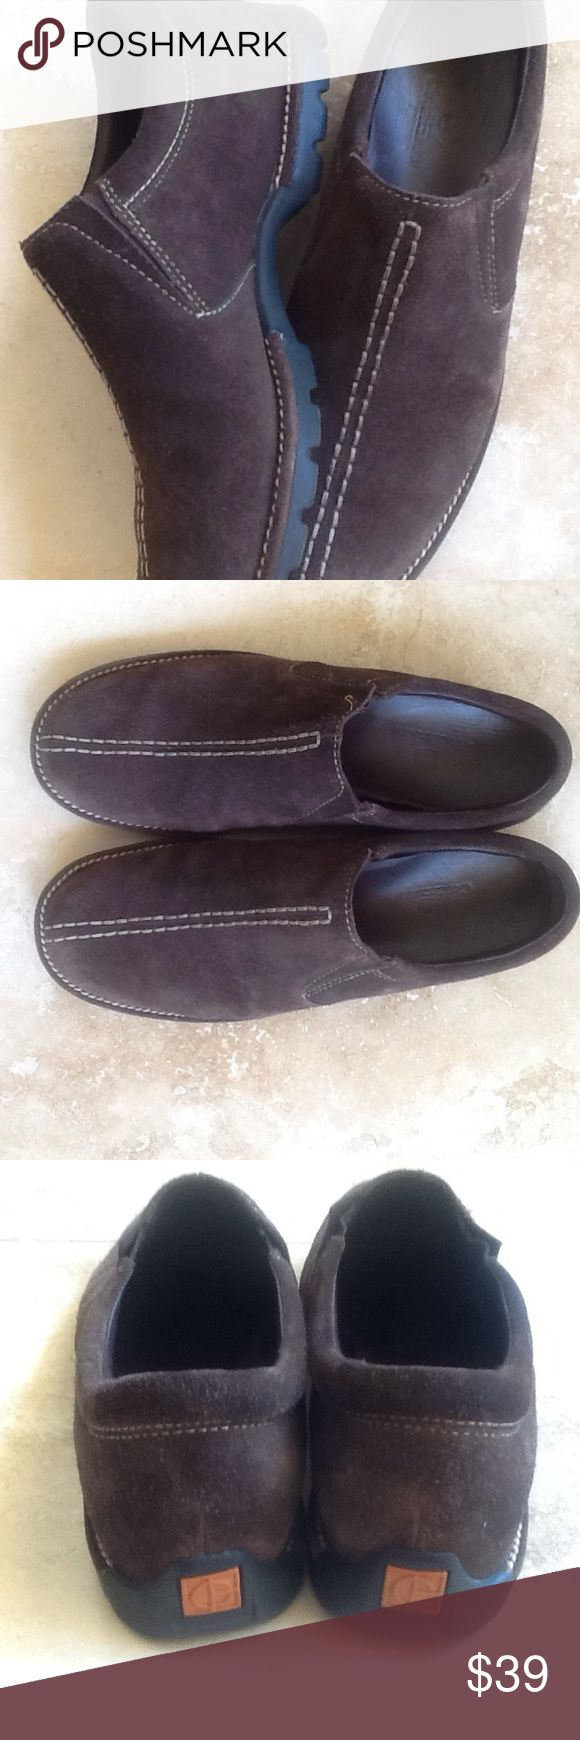 Cole Hann Suede Waterproof Slip-ons Brown suede slip- ons by Cole Hann. Heavy rubber bottoms. Waterproof. EUC. Only one small area with a stitch missing as see imposture 8. Great fall or winter shoe. Cole Haan Shoes Flats & Loafers